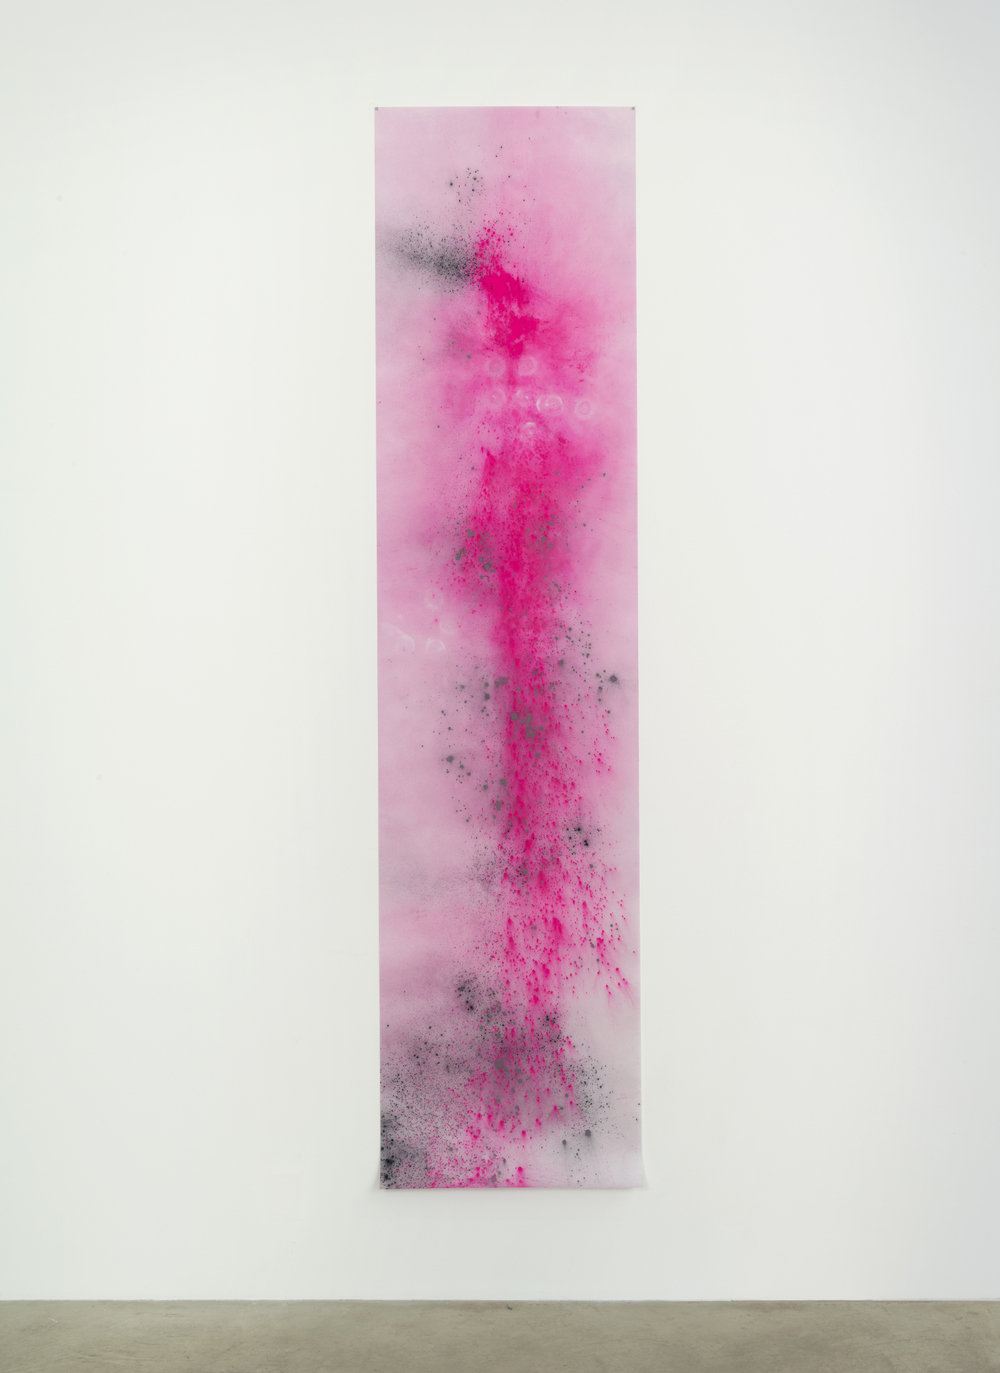 Agra at Dusk , 2014, gun powder, thermochromic pigment and beet-dyed pigment on vellum, 100 x 24 in / 254 x 61 cm